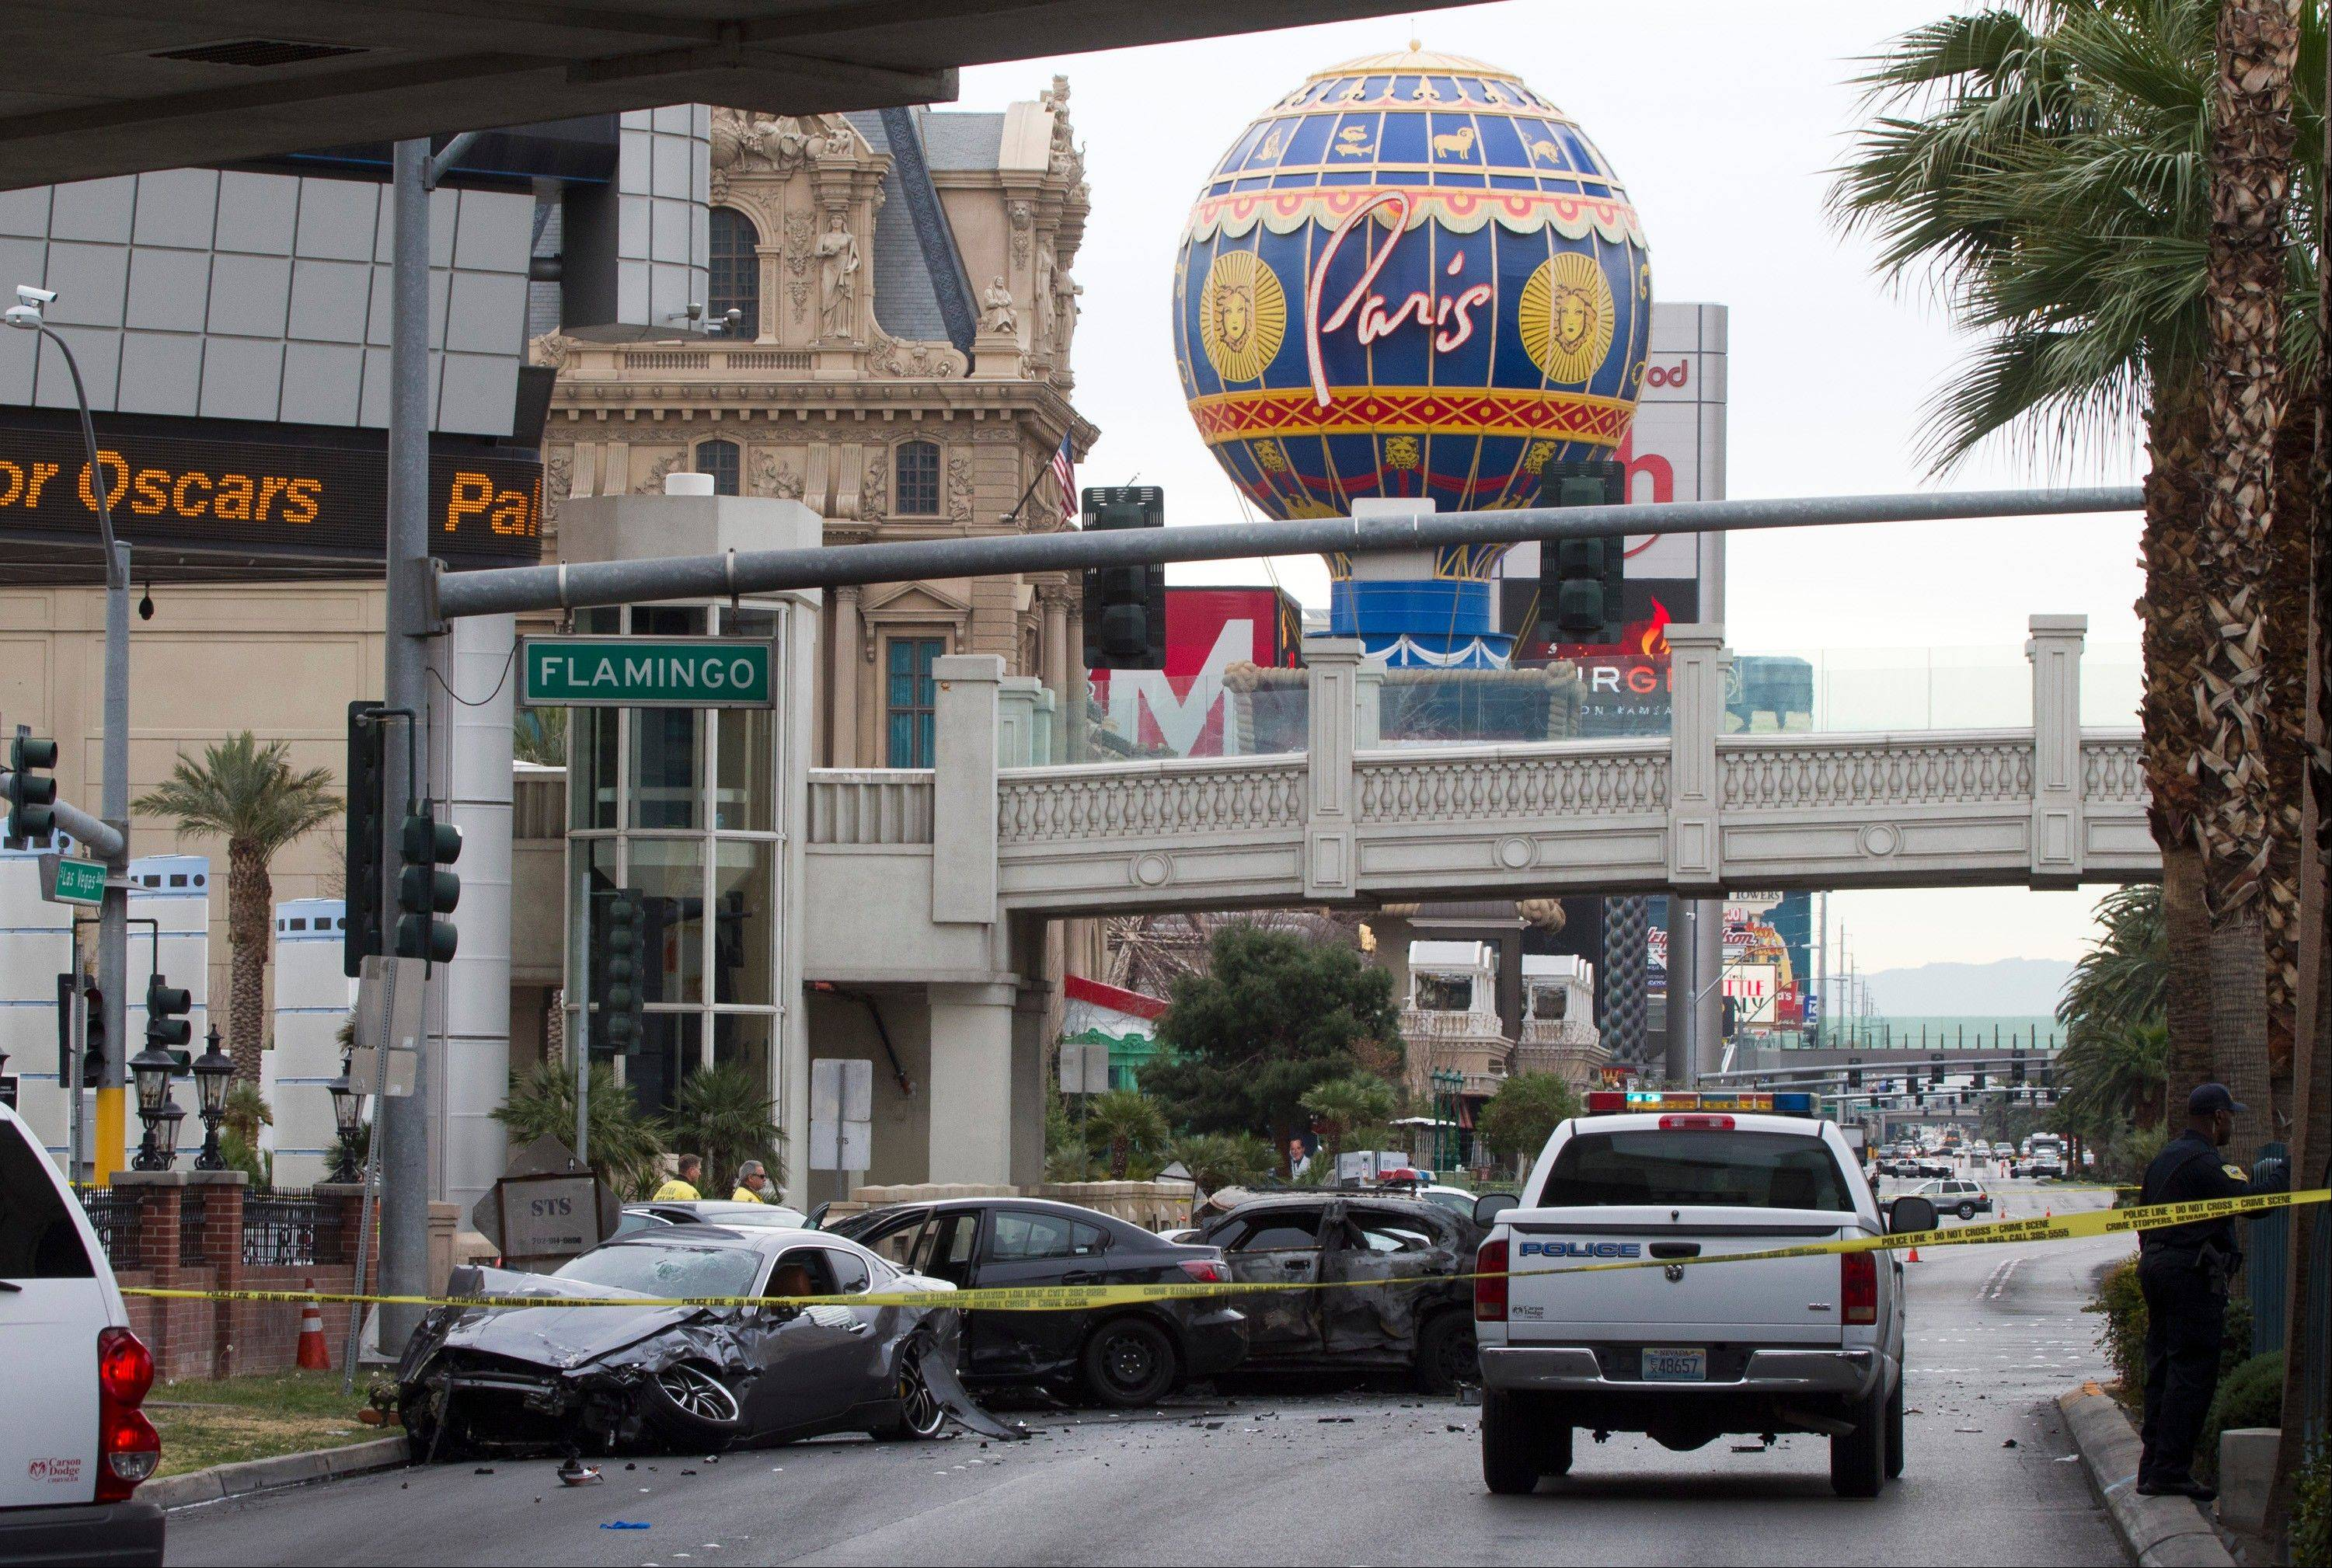 Police rope off the scene of a shooting and multi-car accident on the Las Vegas Strip in Las Vegas early Thursday